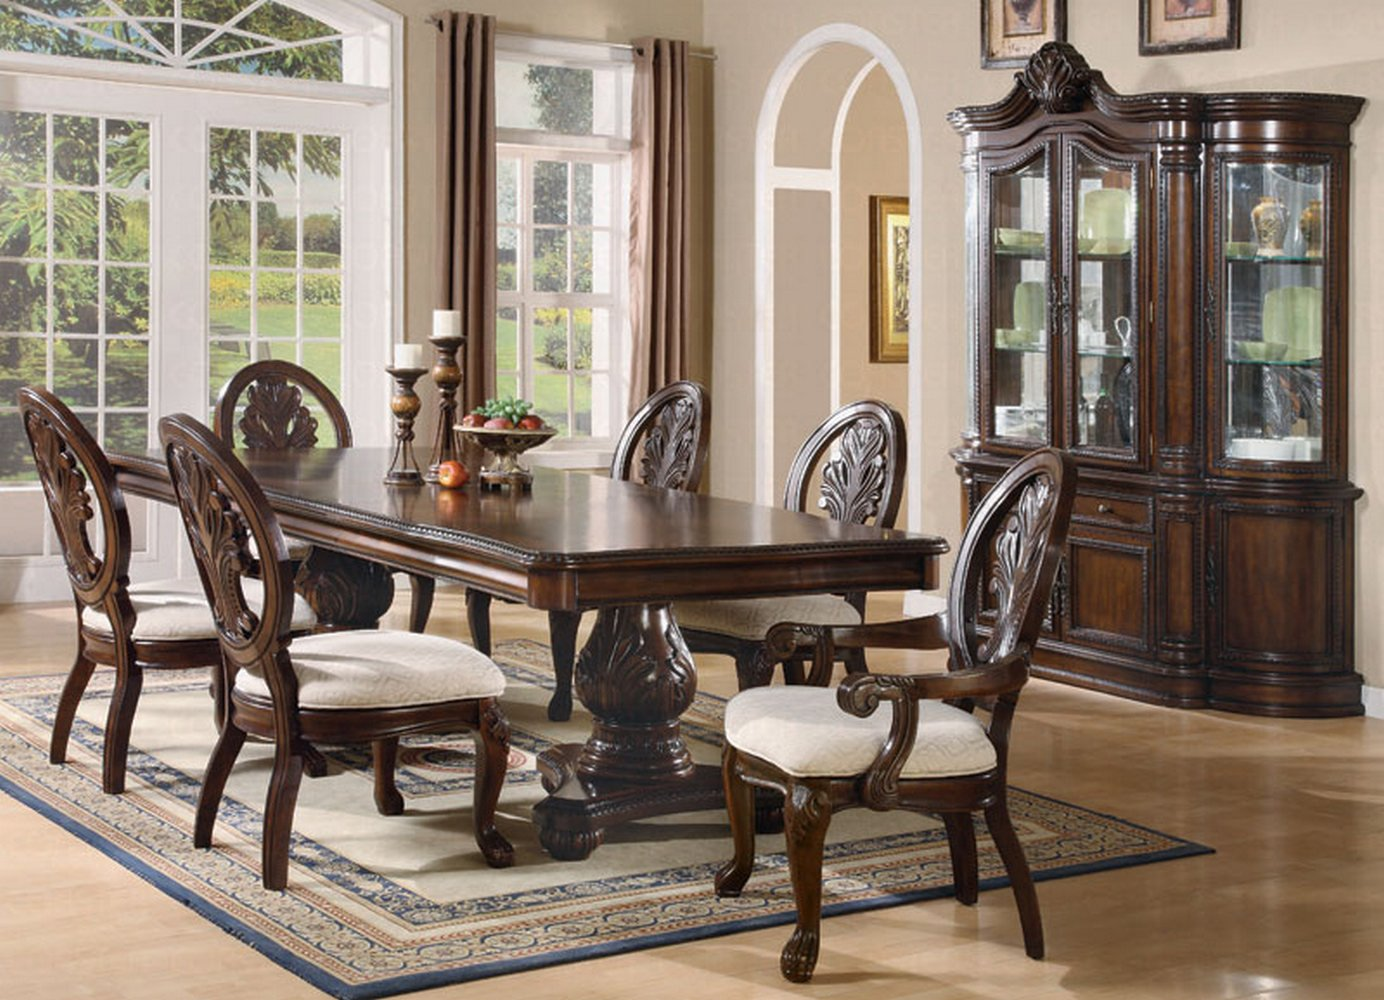 Formal Dining Room Sets For 8 Images Of Formal Dining Room Sets For 8 Patiofurn Home Design Ideas